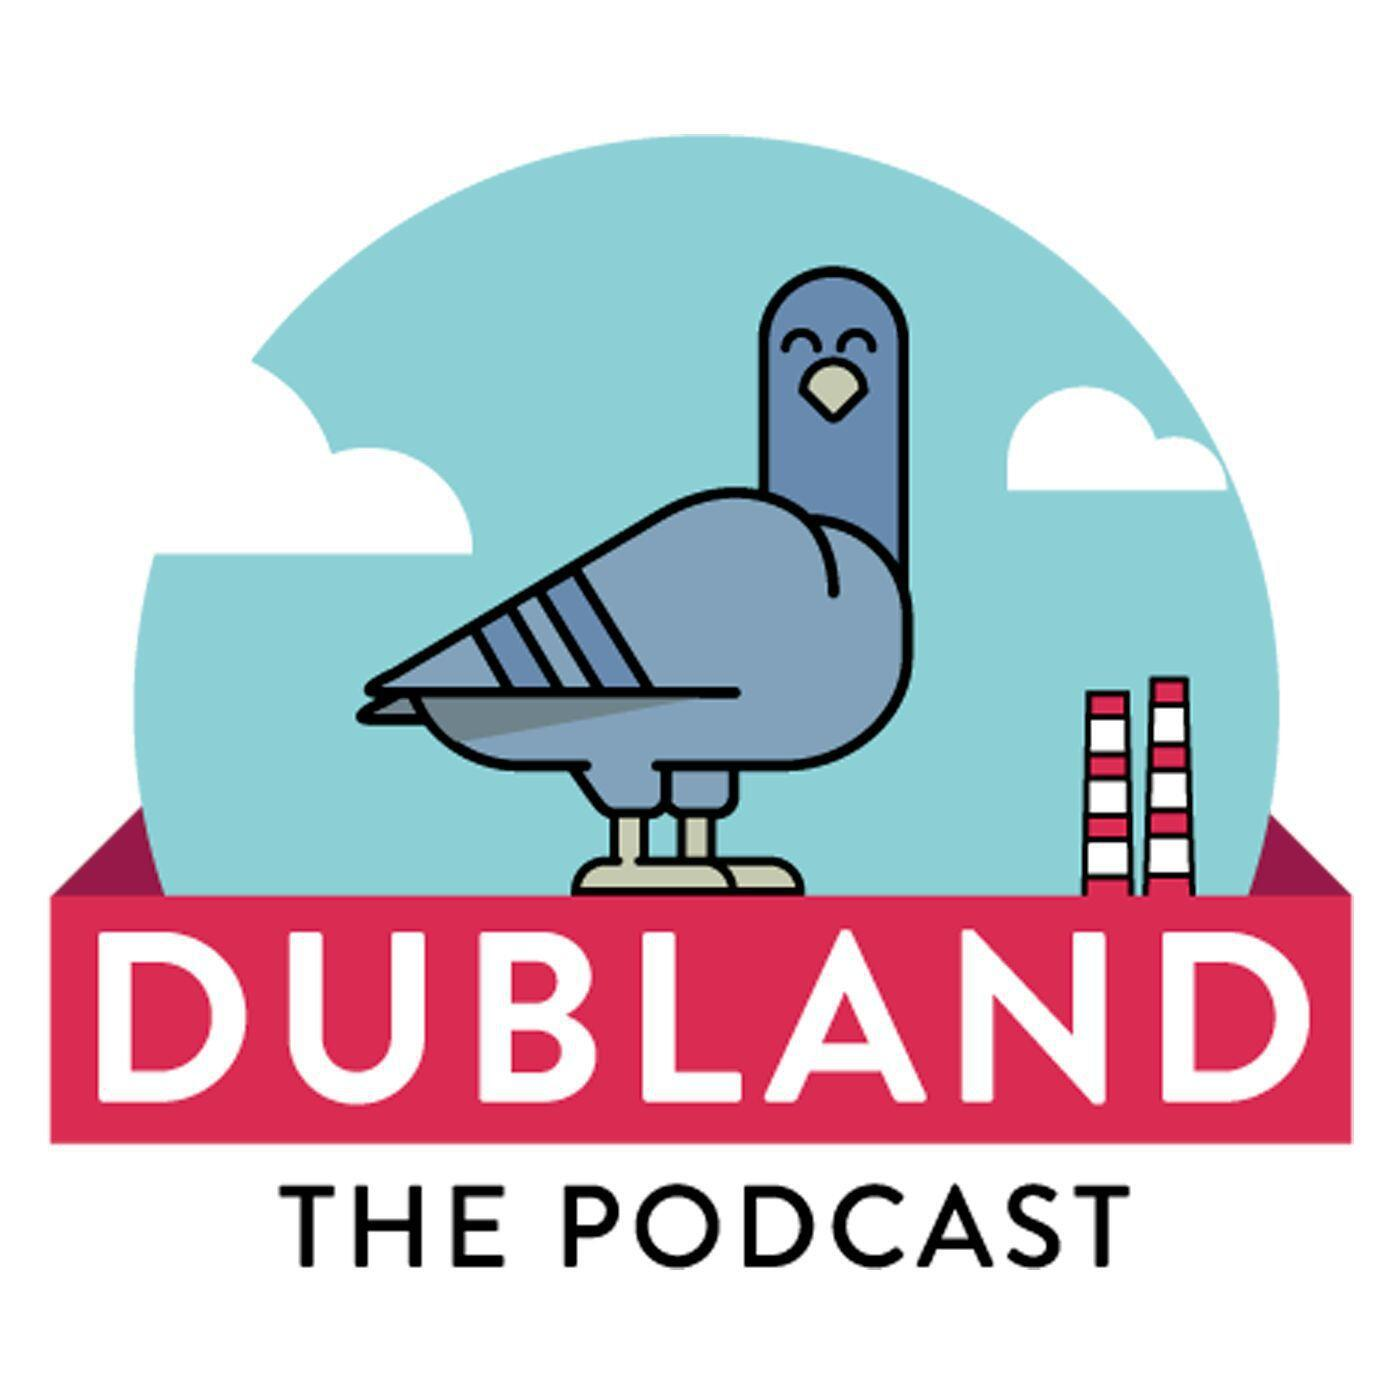 DUBLAND THE PODCAST EPISODE THIRTEEN